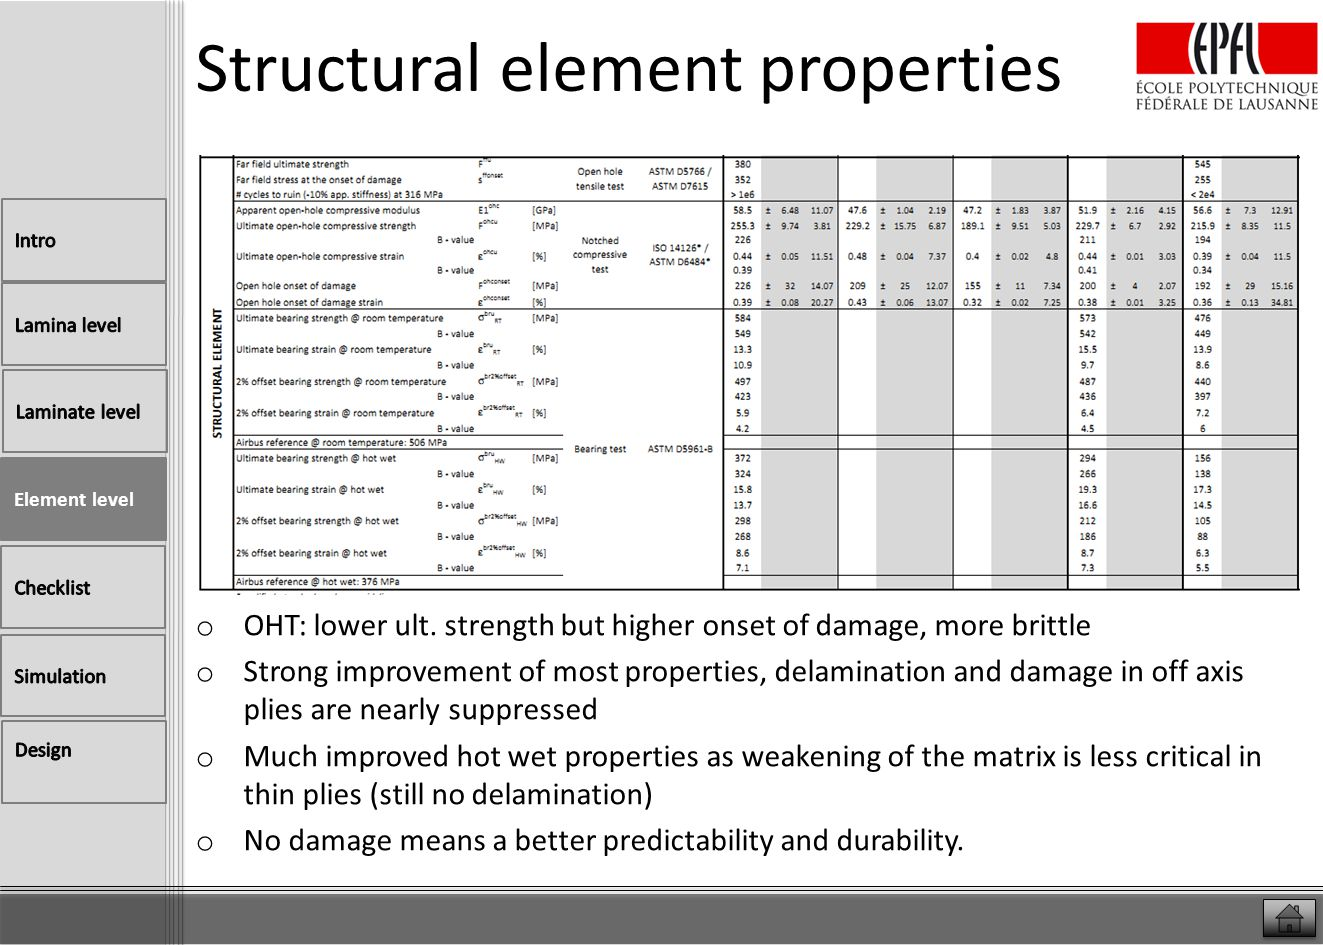 Structural element properties